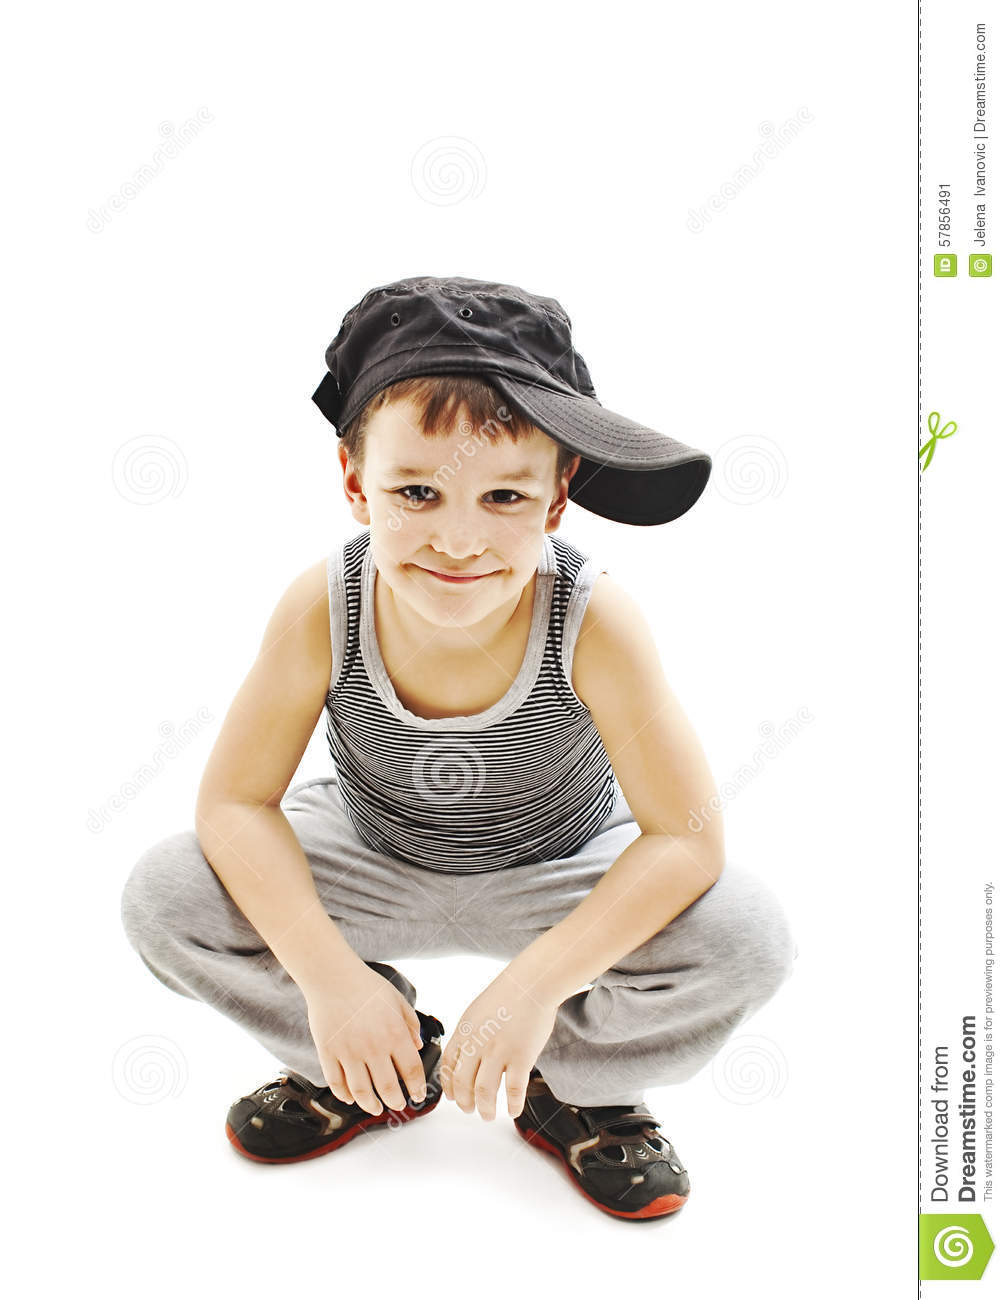 Stylish baby boy with hat